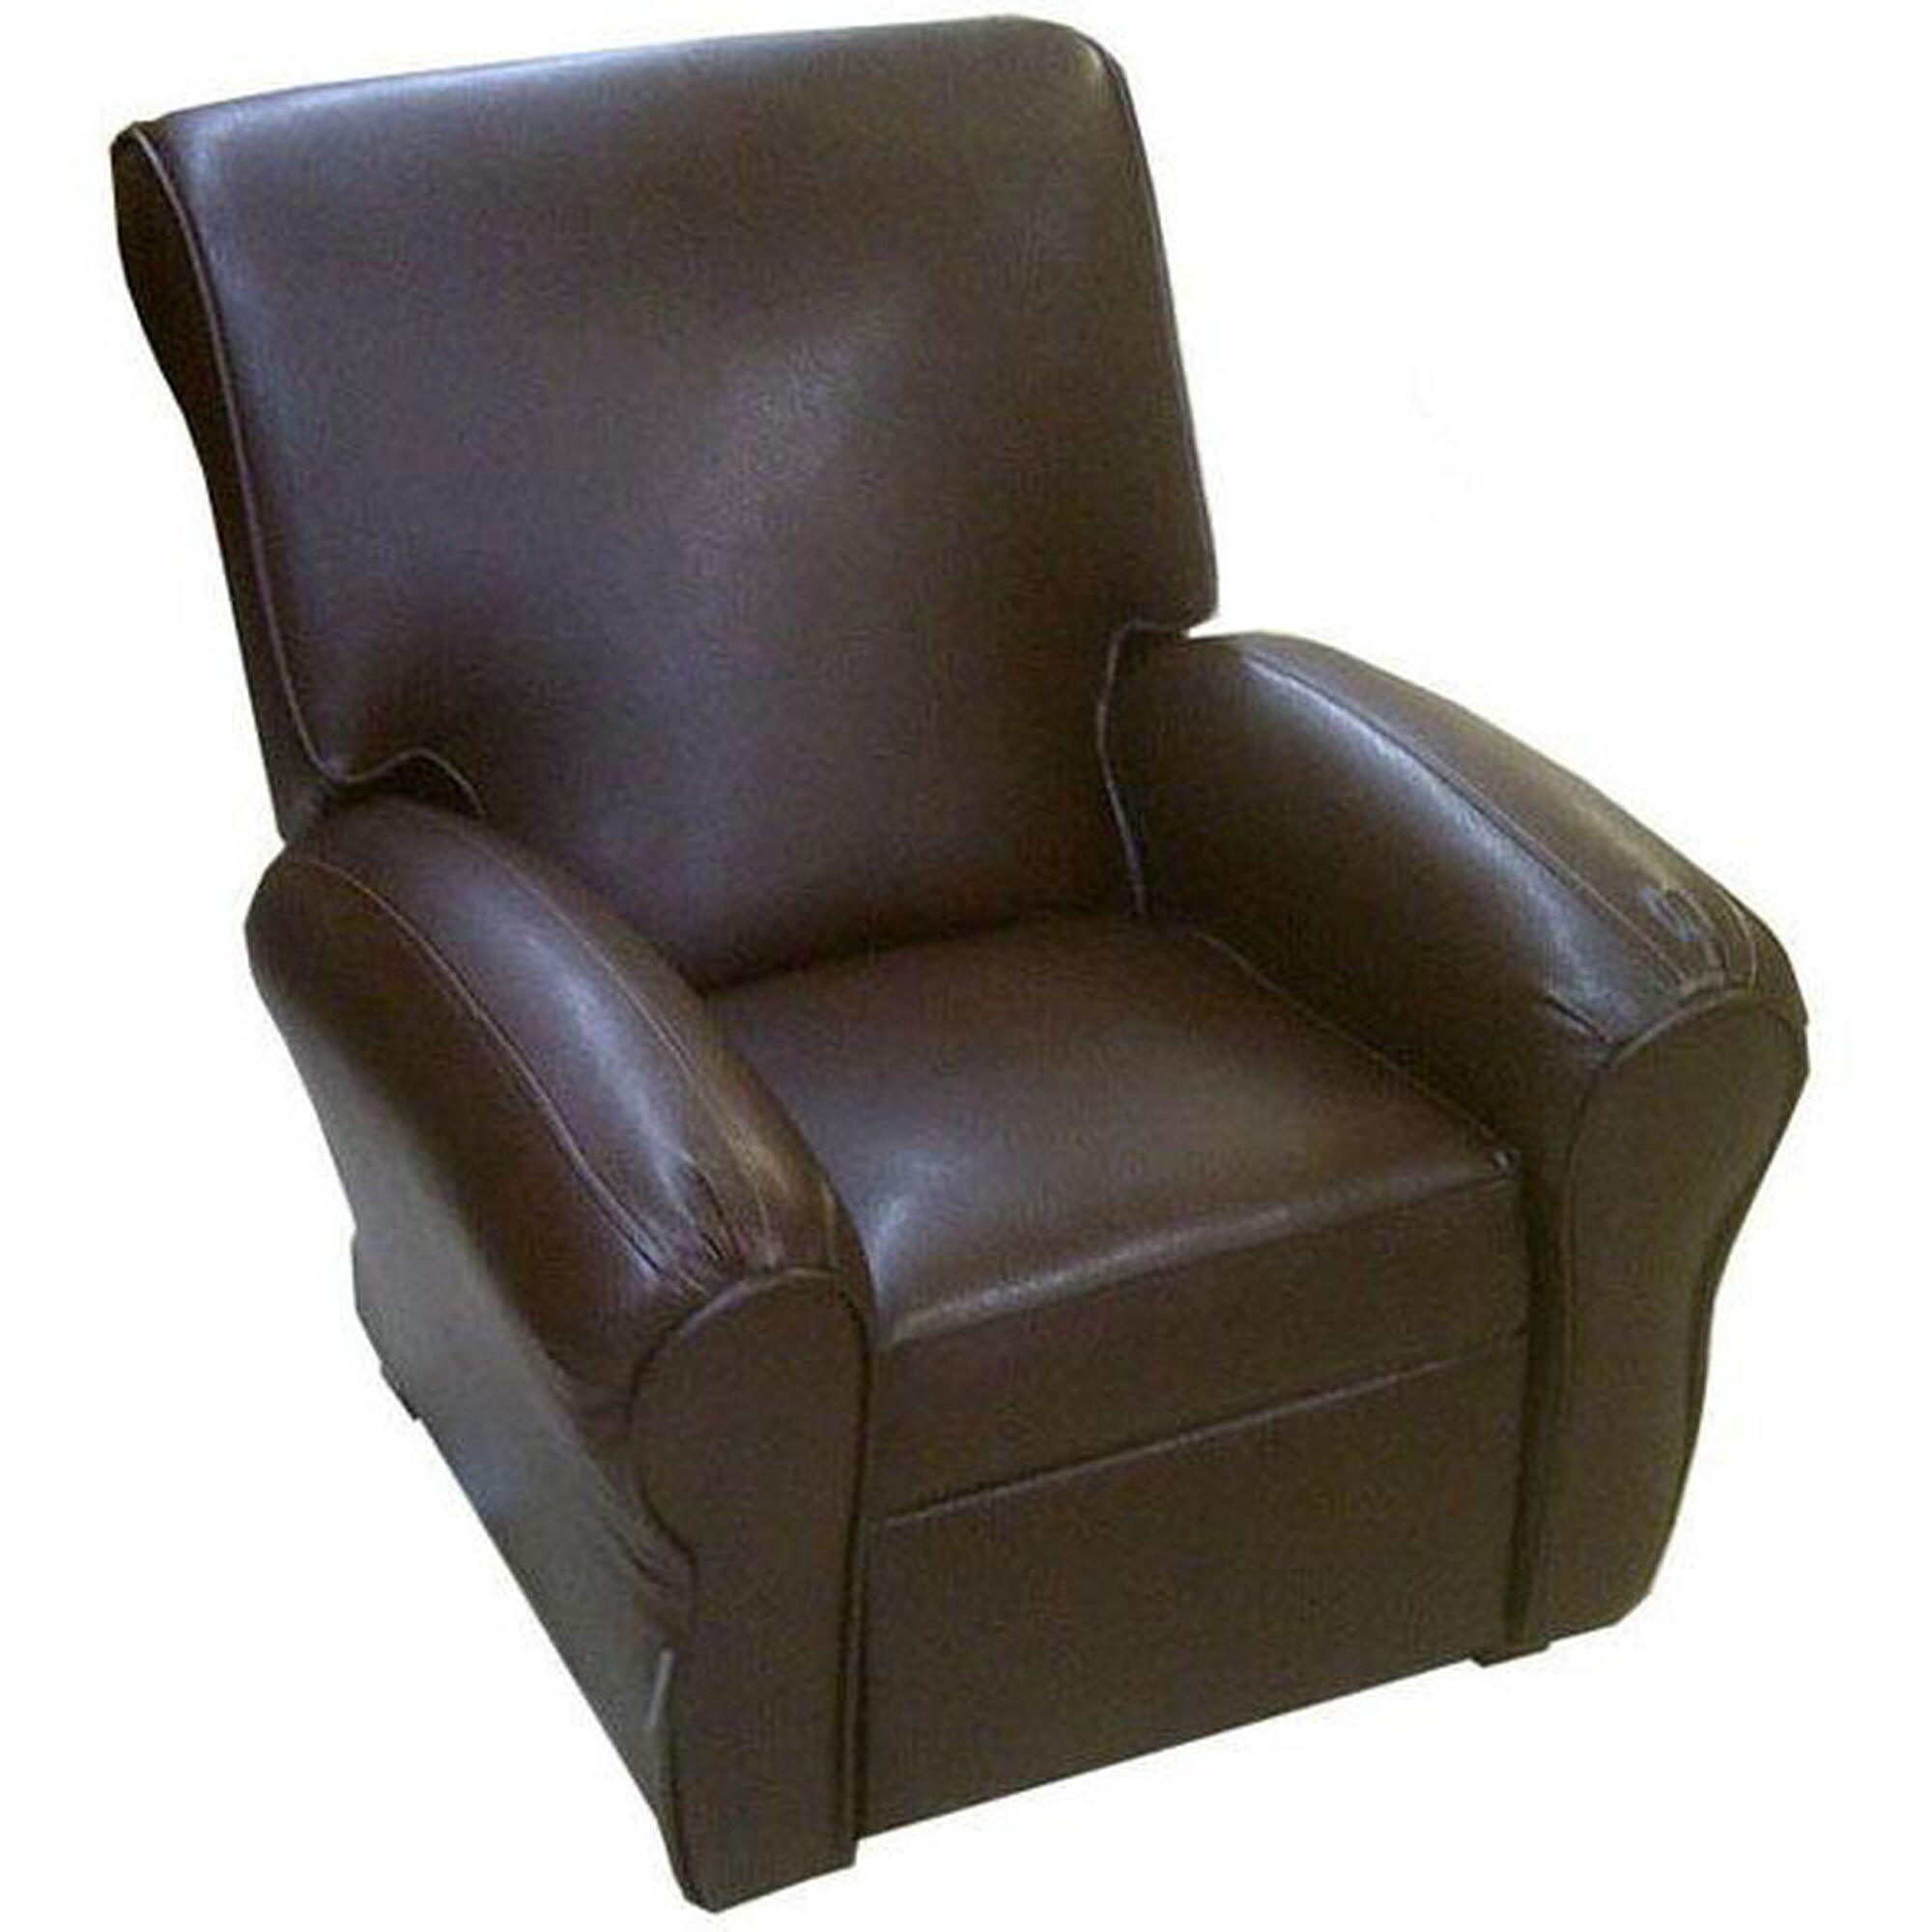 Superb Big Kids Faux Leather Recliner Pecan Brown Andrewgaddart Wooden Chair Designs For Living Room Andrewgaddartcom